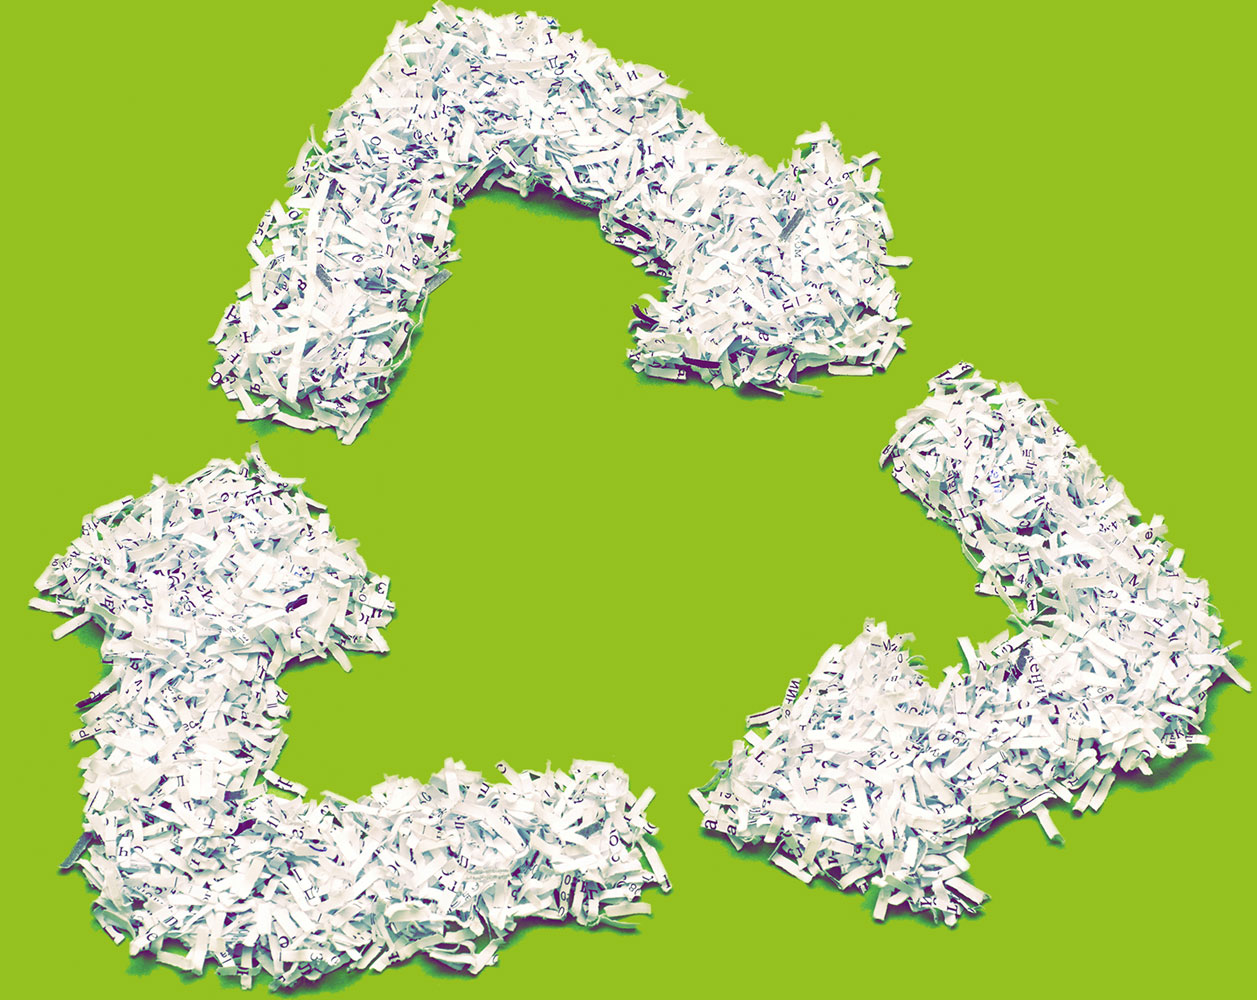 Recycling logo made out of shredded paper.